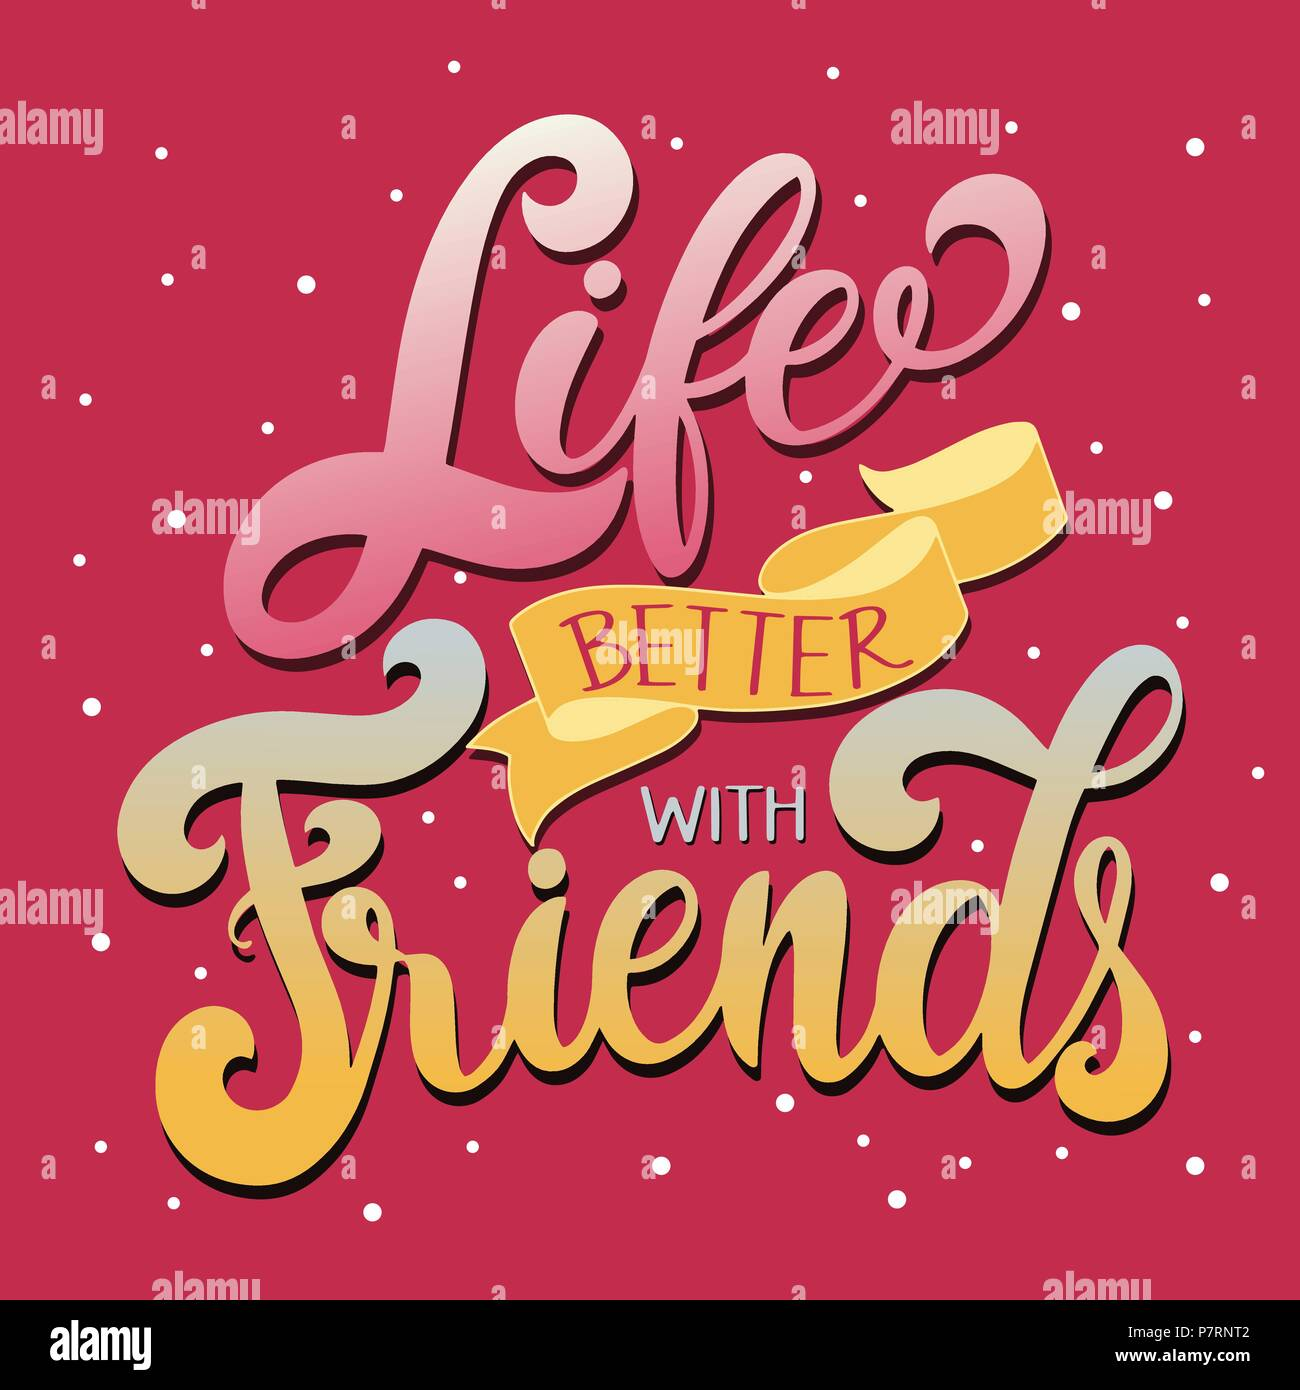 Friendship Day Hand Drawn Lettering Life Better With Friends